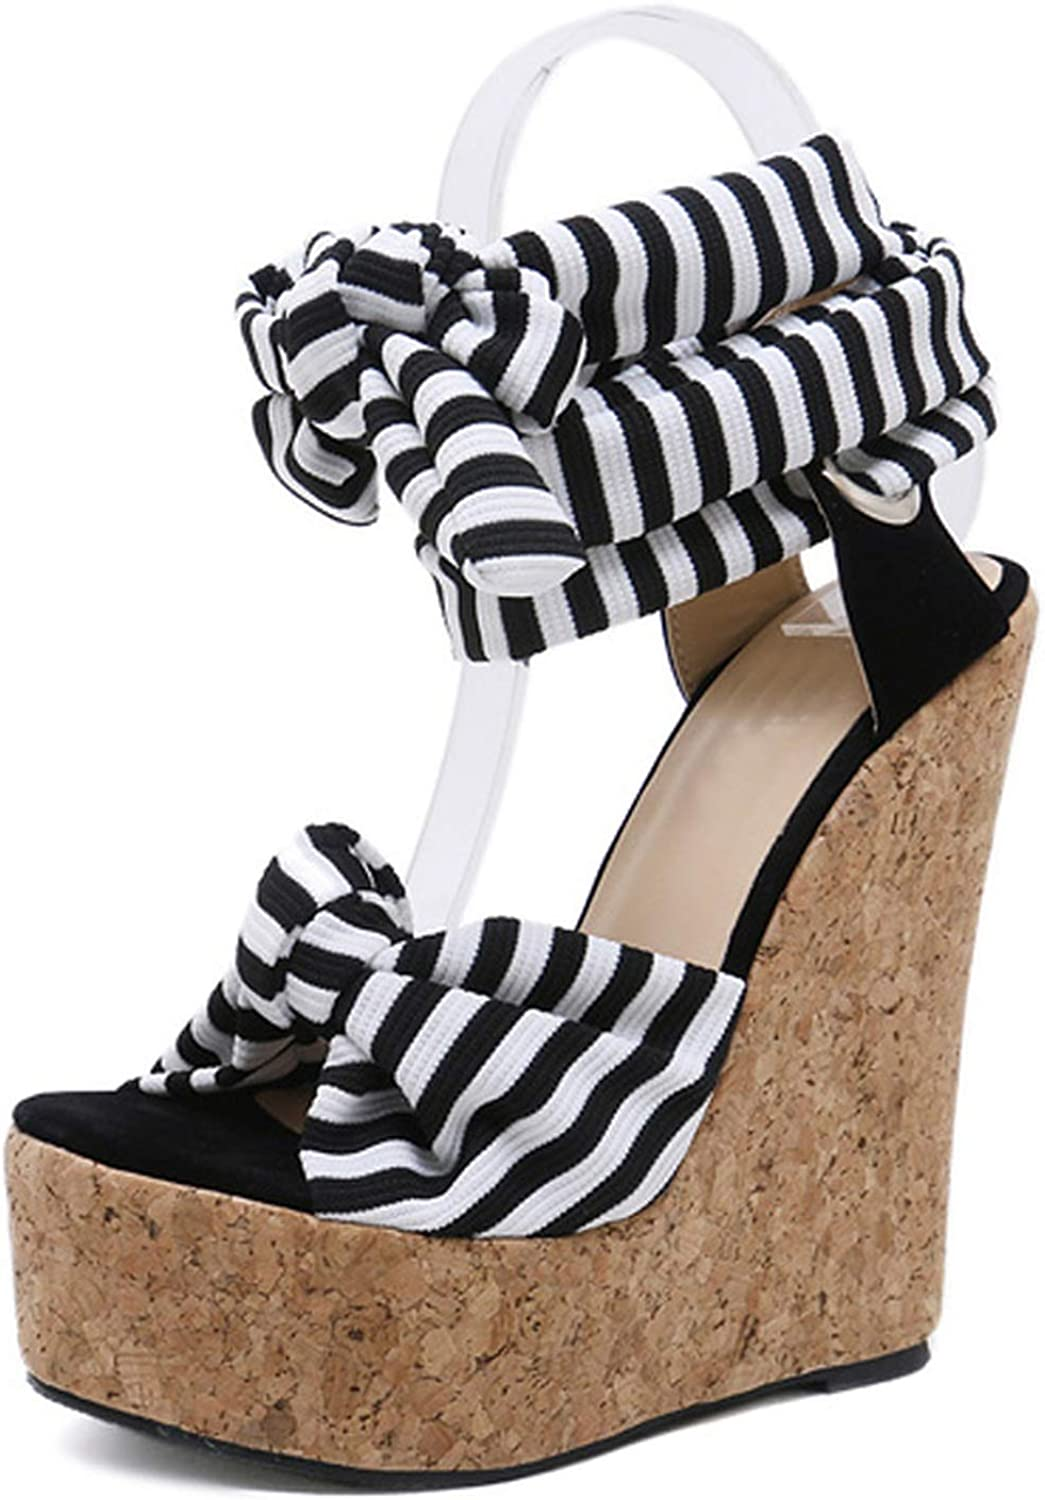 Ches Cotton Fabric High Wedges Sandals Women Ladies Fashion Ankle Strap Lace Up Party High shoes Sandalias women 2019